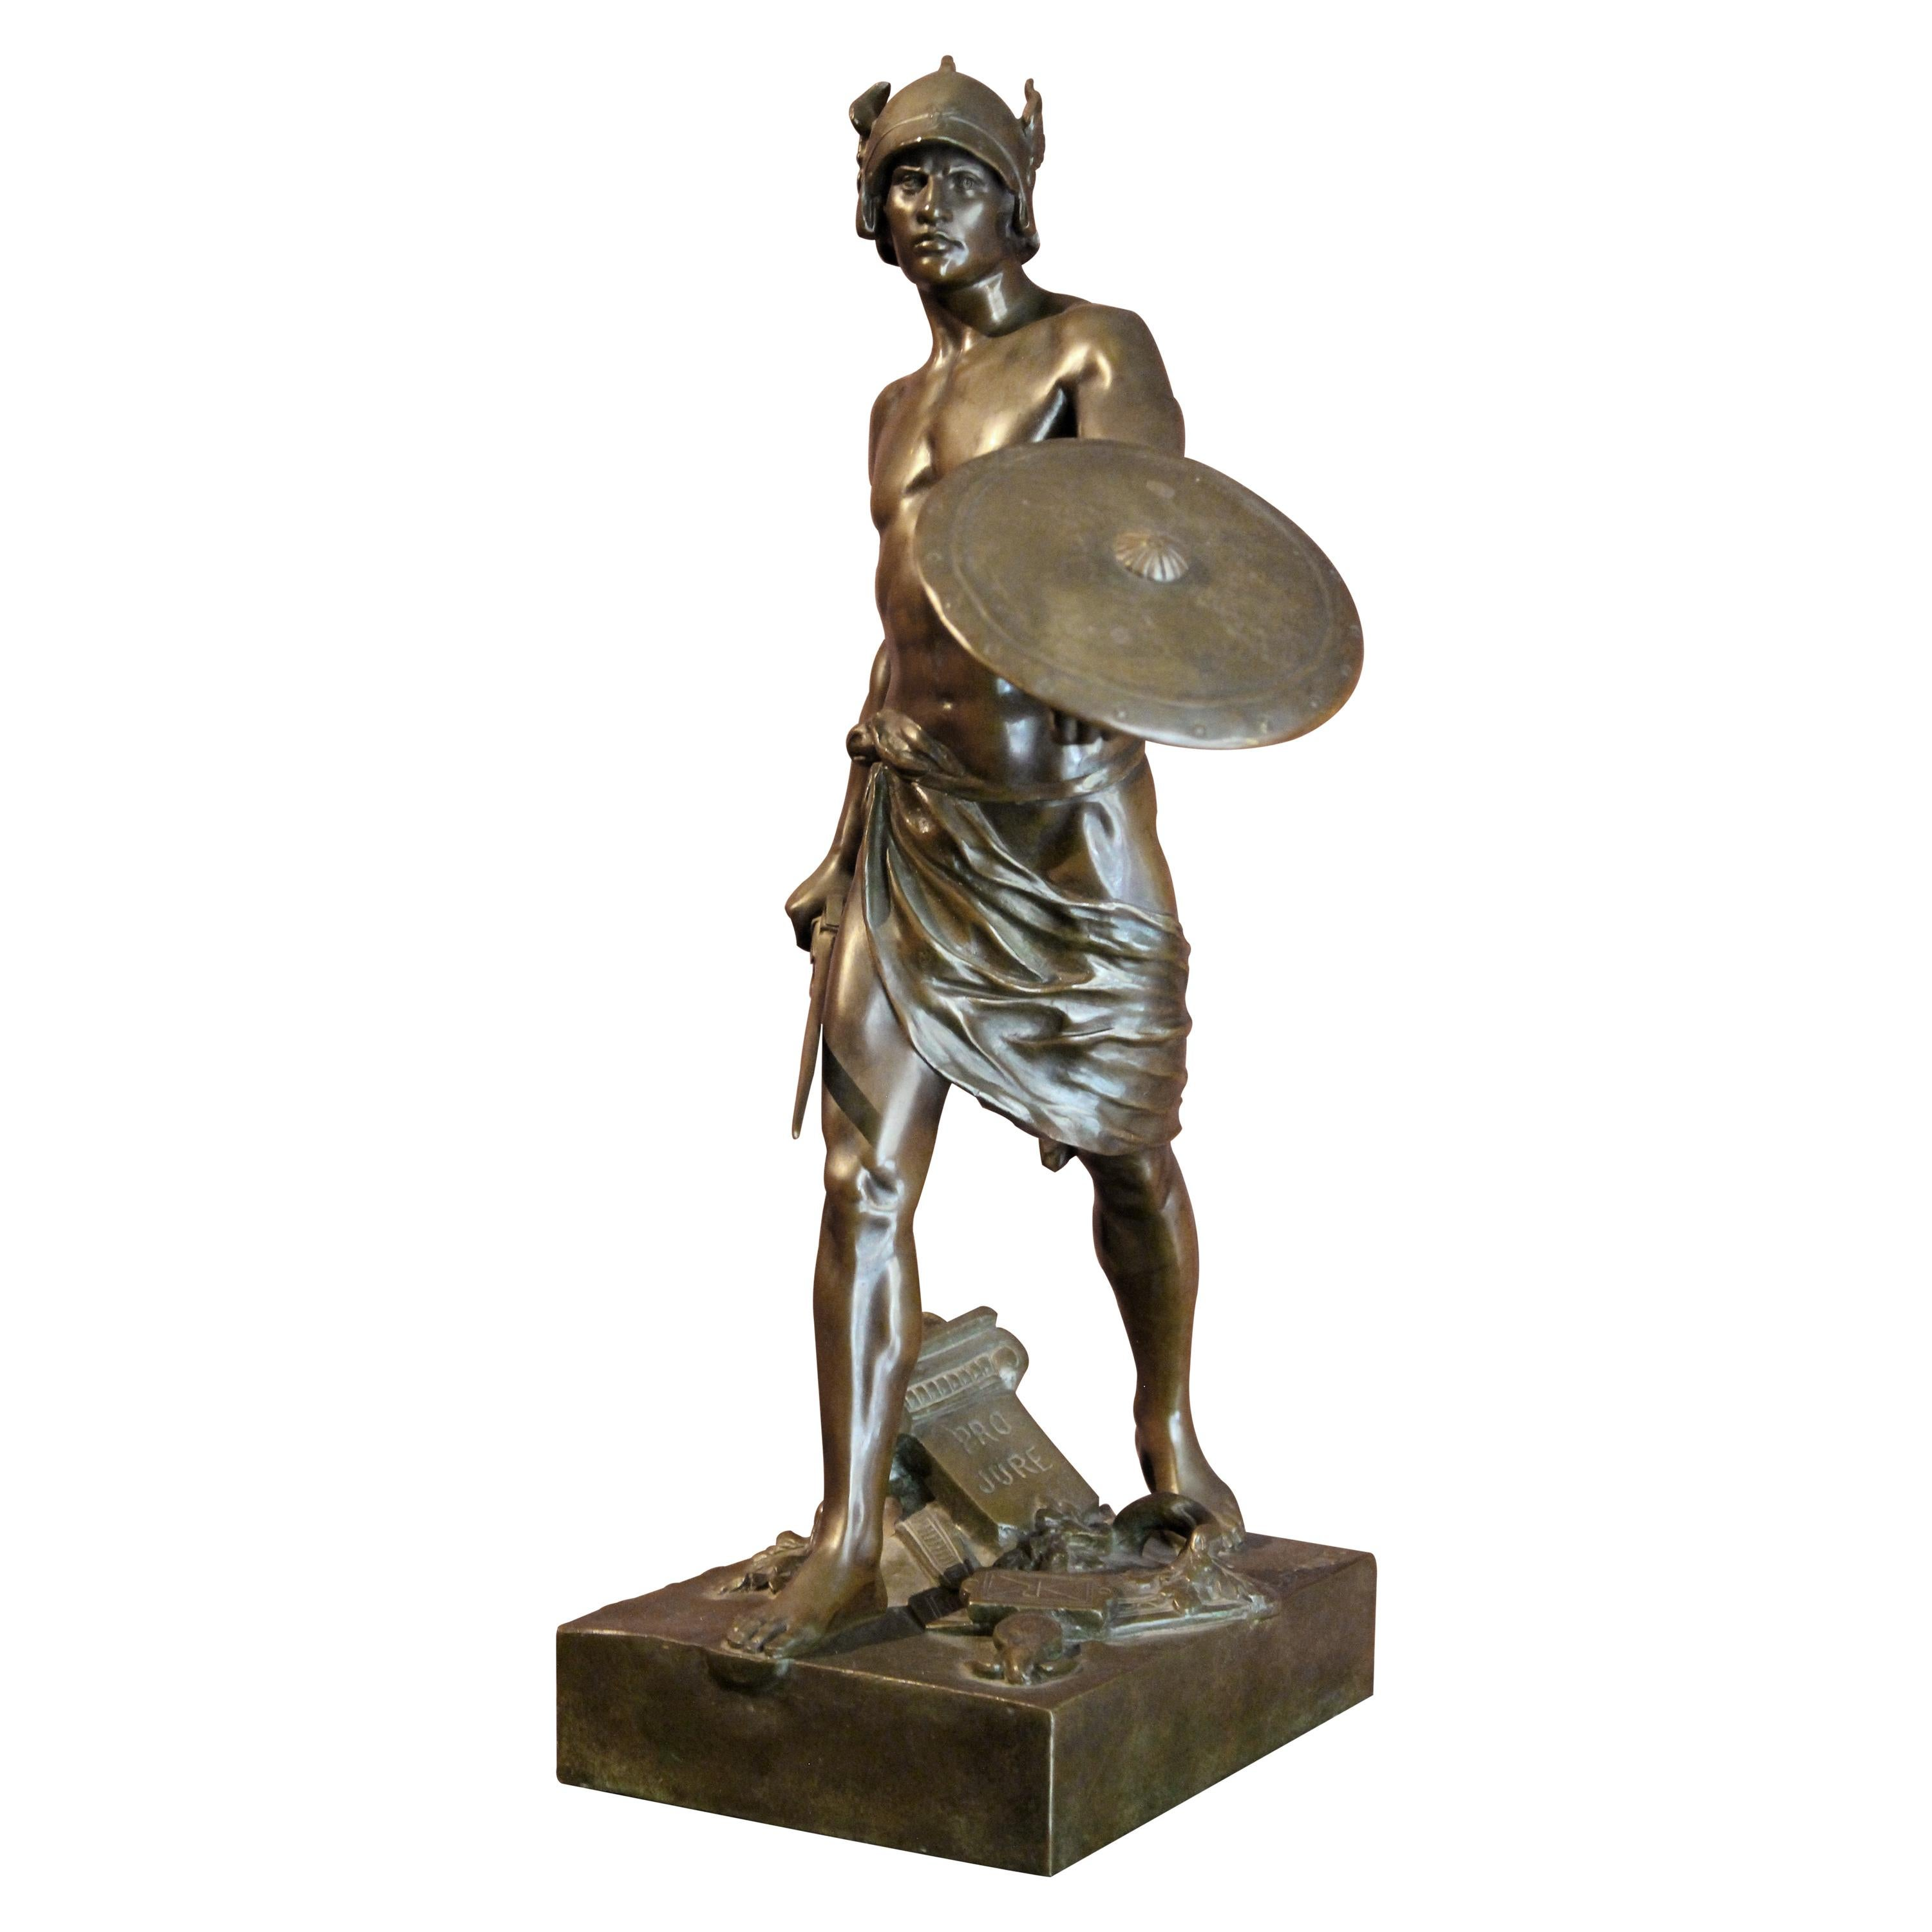 E. Picault 19th Century French Burnished Bronze Sculpture of a Gallic Warrior